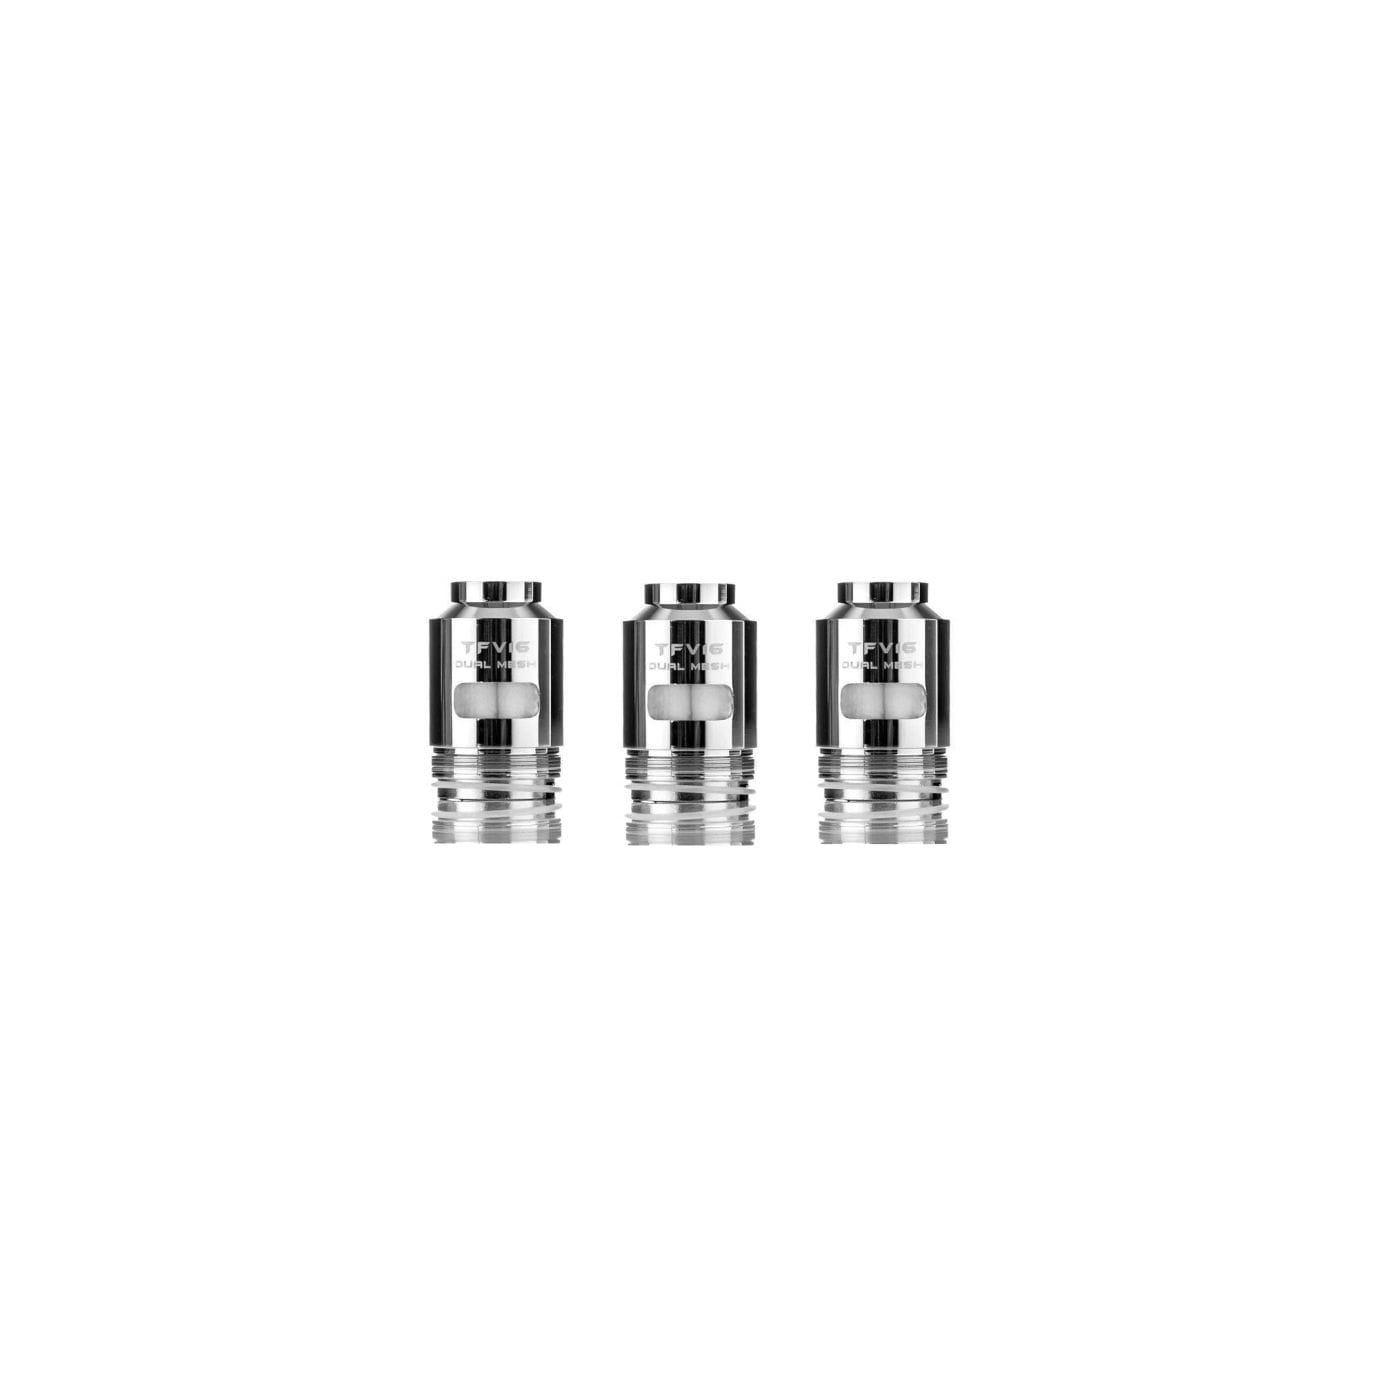 Smok TFV16 Dual Mesh Replacement Coil - 3 Pack